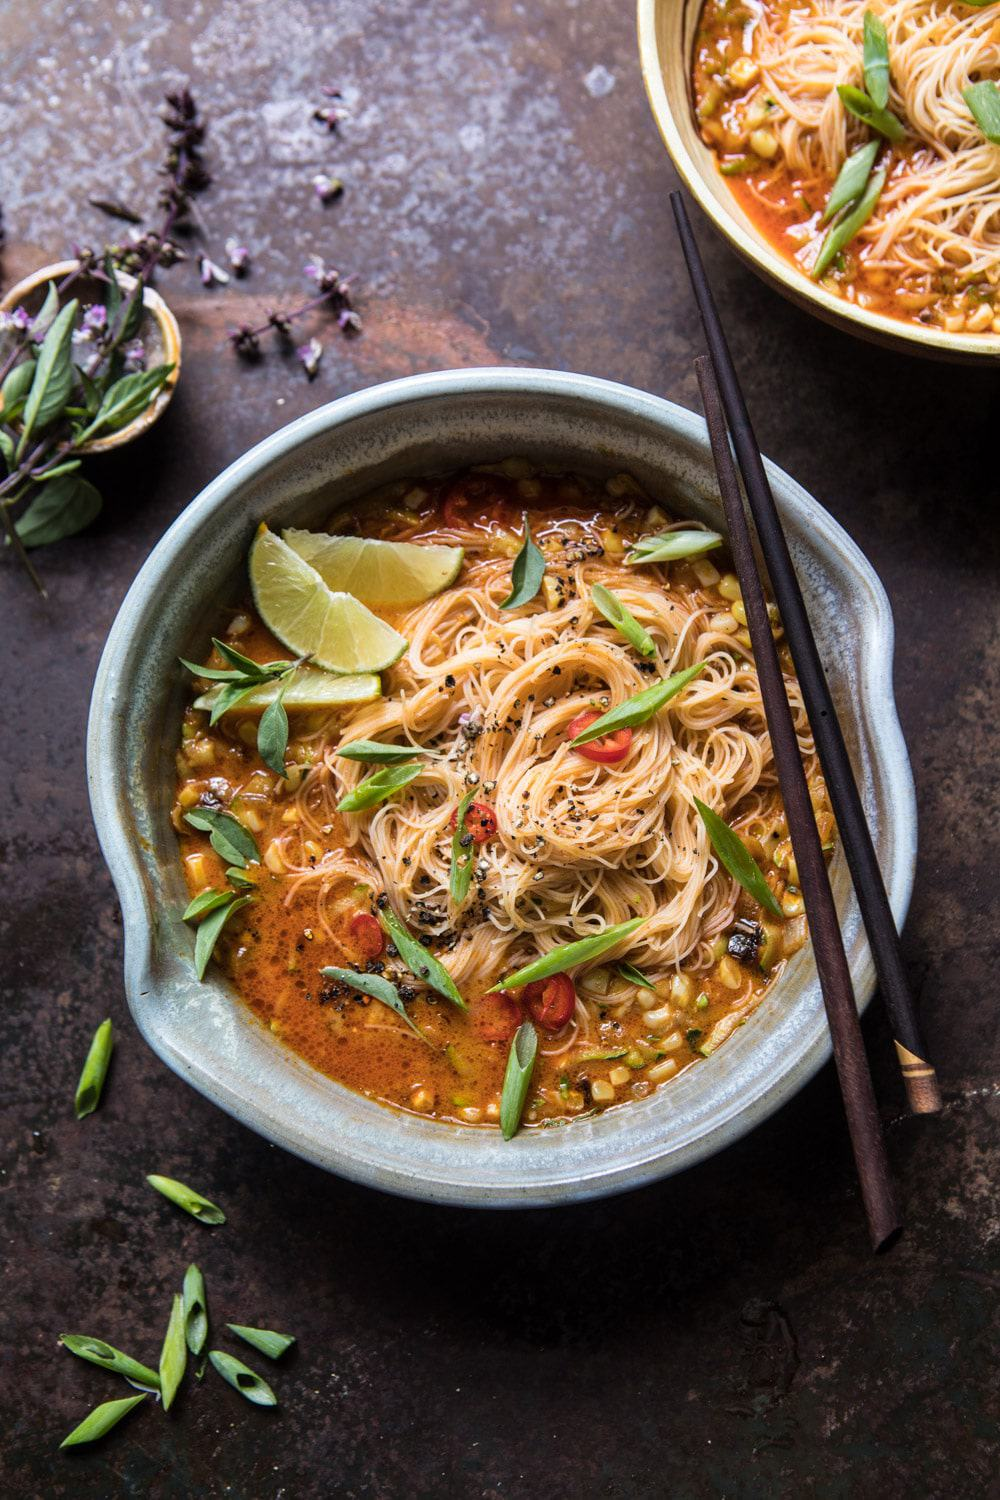 Saucy Summer Curry with Rice Noodles and Garden Vegetables | halfbakedharvest.com #curry #summerrecipes #easyrecipes #thairecipe #simplerecipes